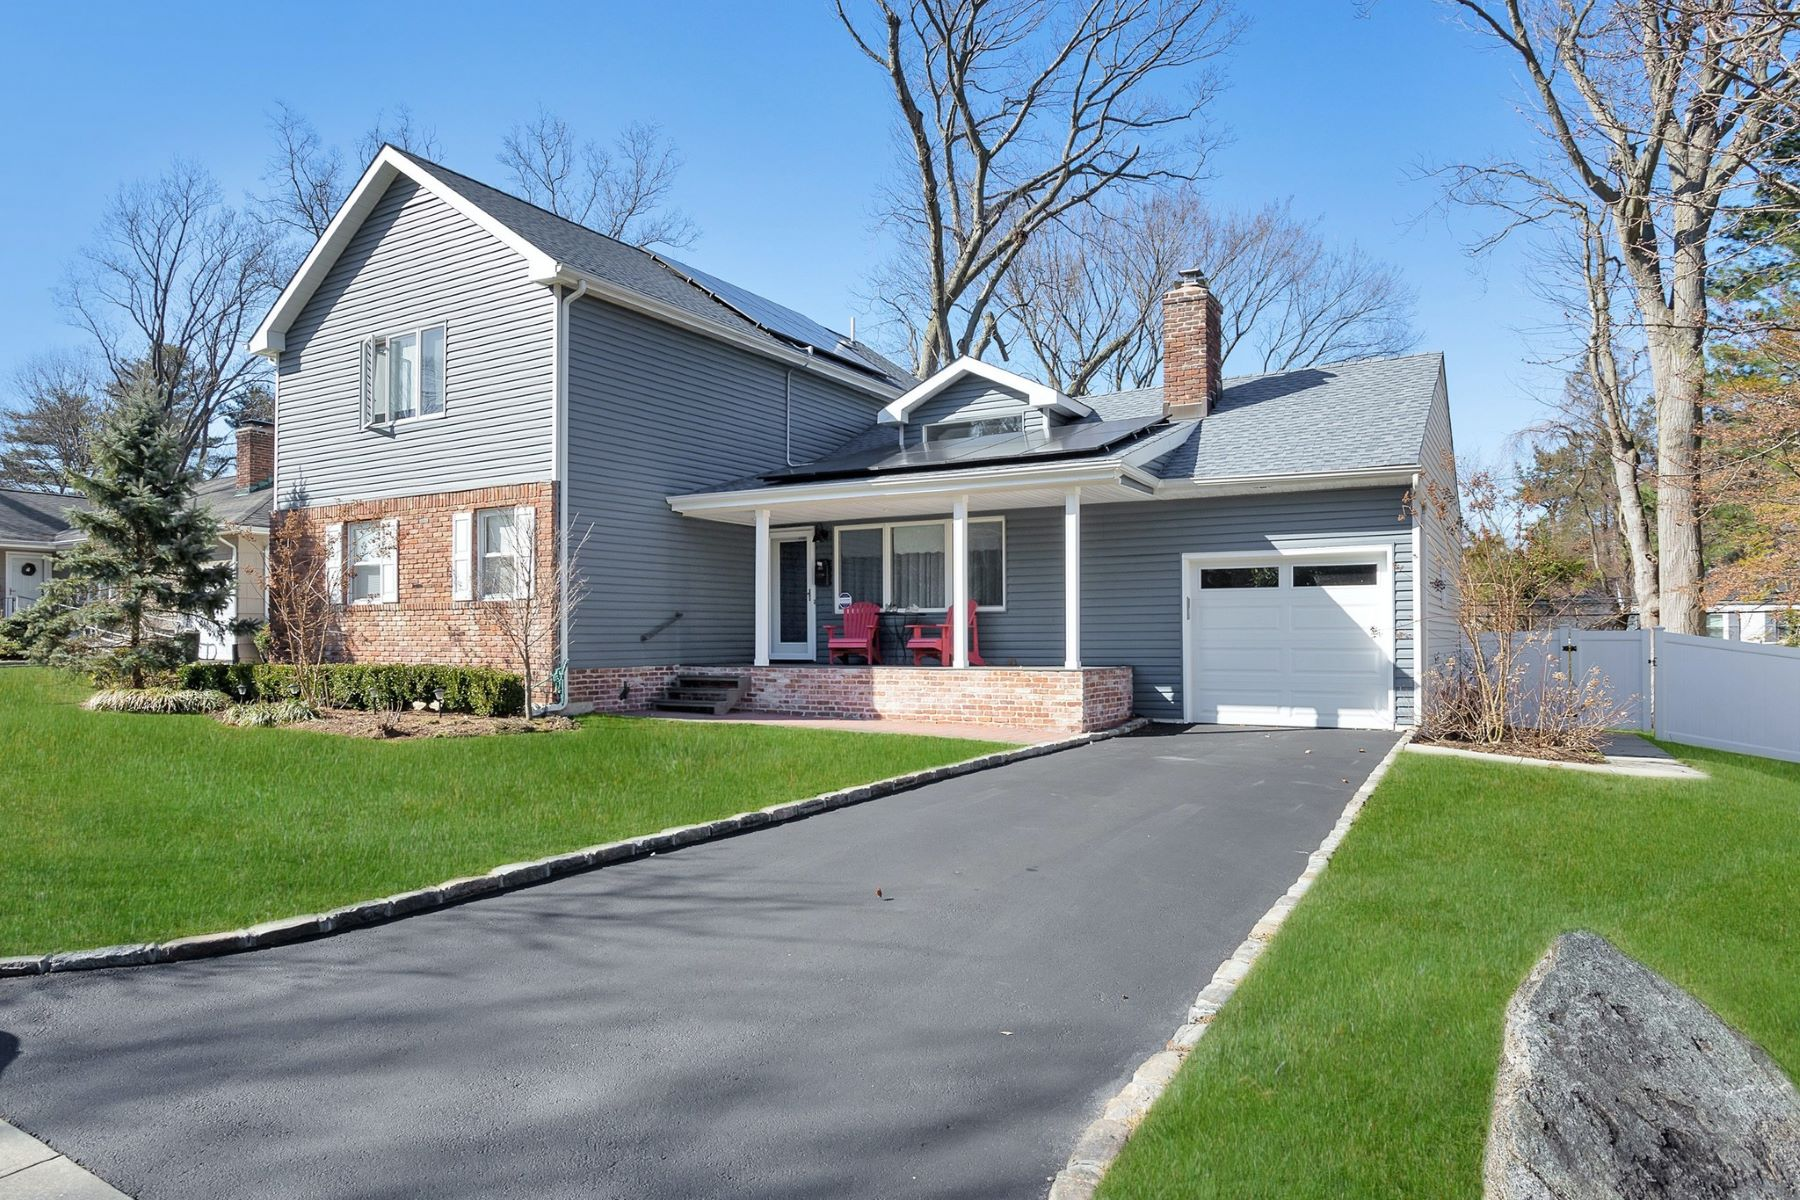 Single Family Homes for Active at Glen Head 83 Plymouth Drive Glen Head, New York 11545 United States